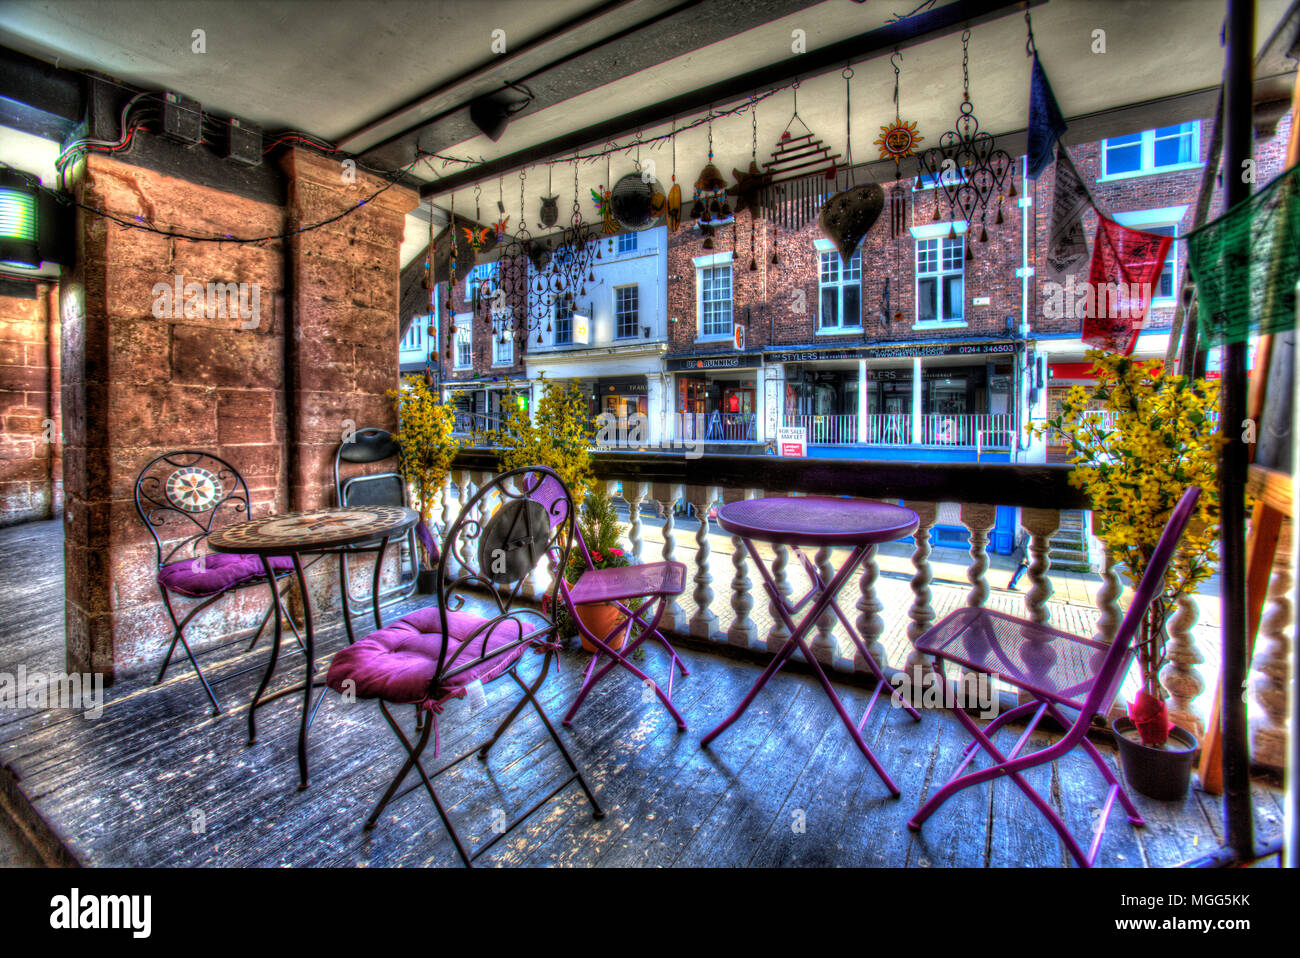 City of Chester, England.  Artistic view of a café on Bridge Street Rows, with Bridge Street pedestrian precinct in the background. - Stock Image